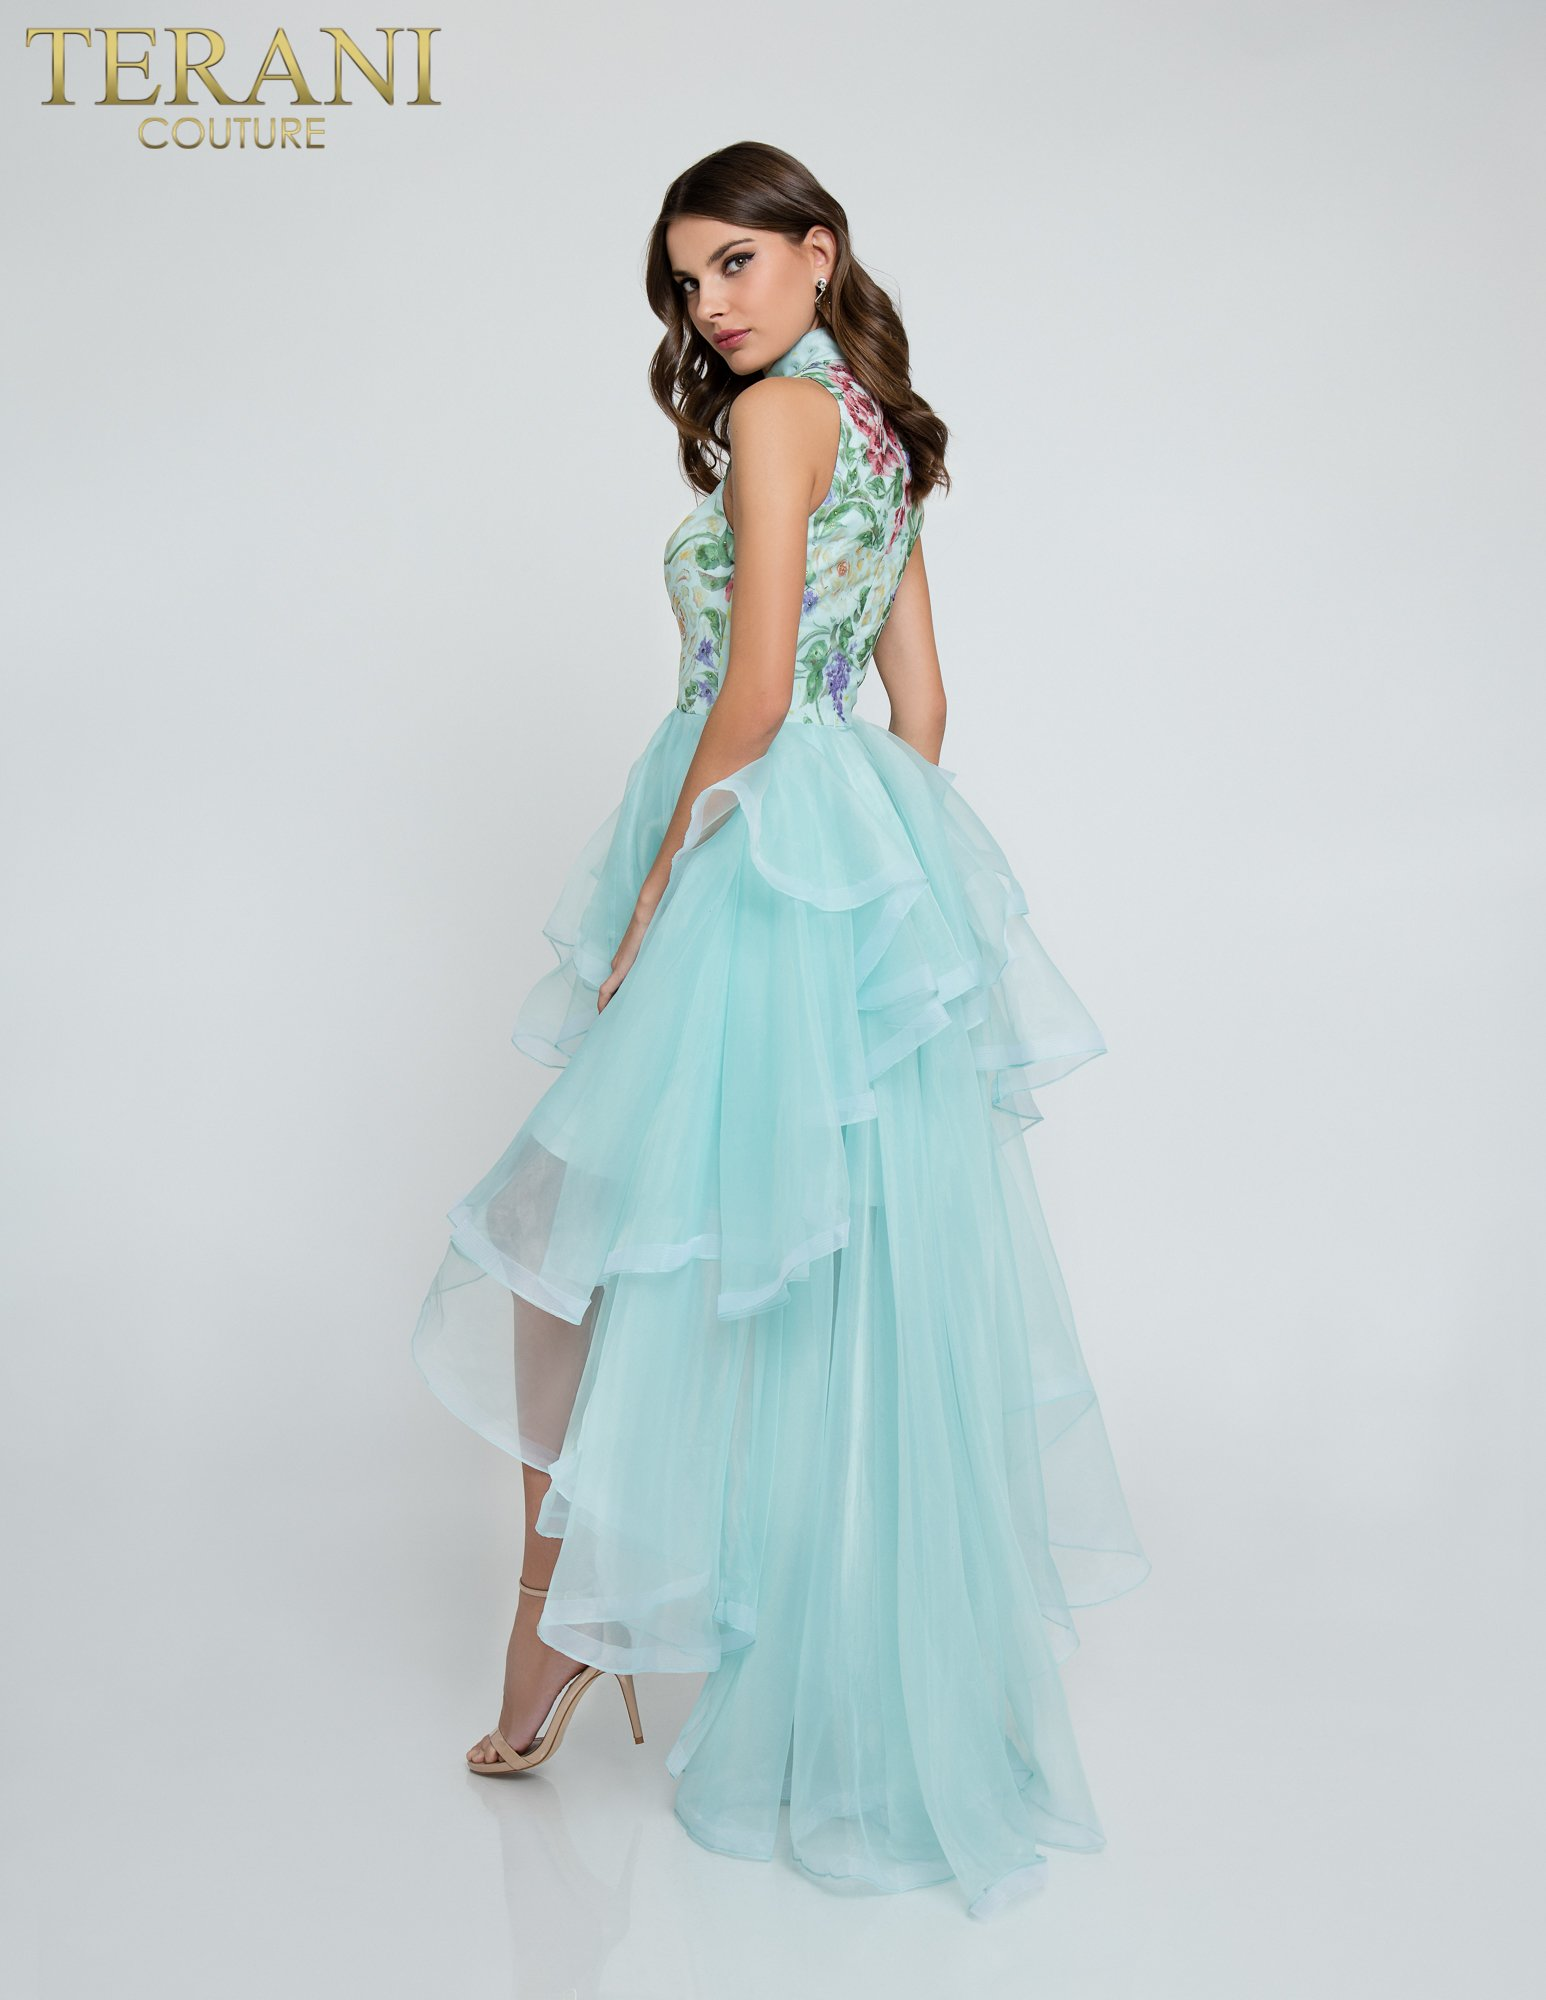 High Neck Floral Print Organza Prom Dress - 1811P5810